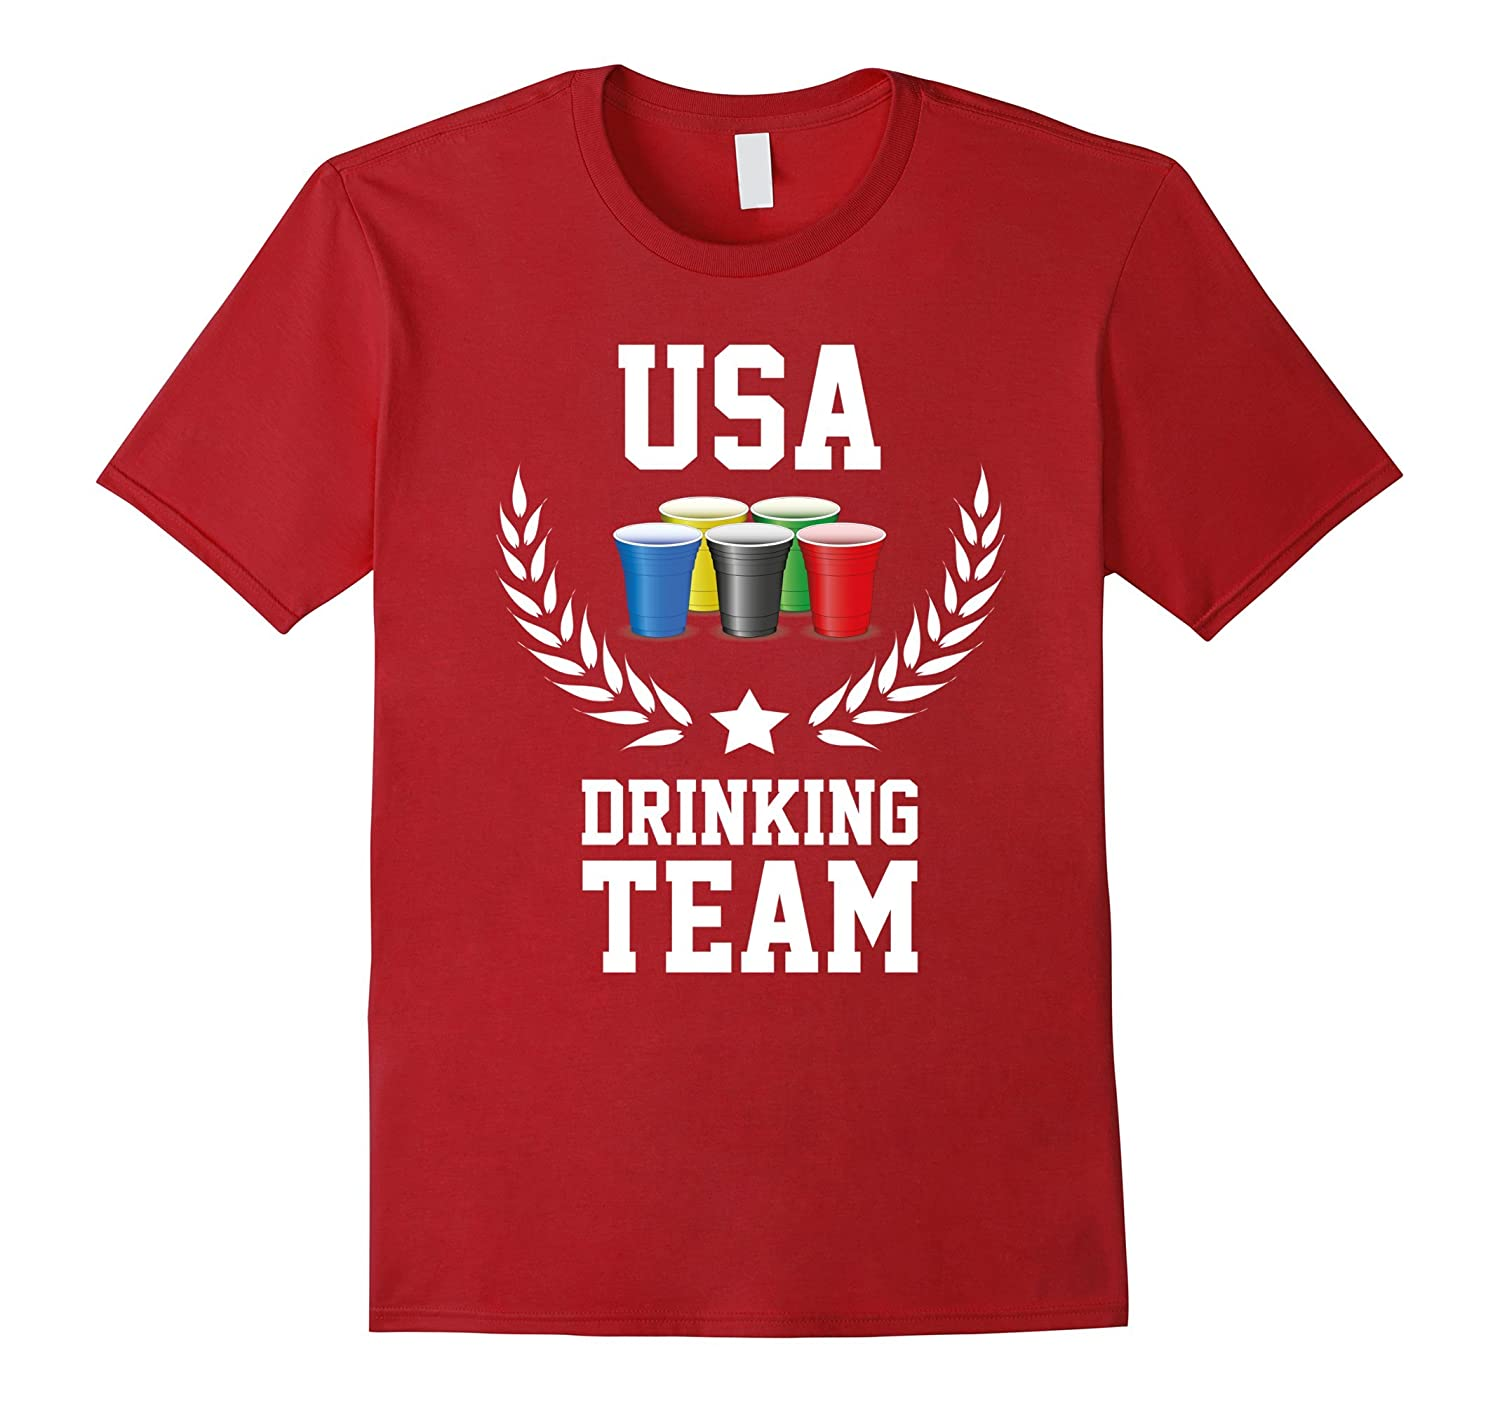 USA Drinking Team T-Shirt - Sport Games 2016 - Unisex-CL